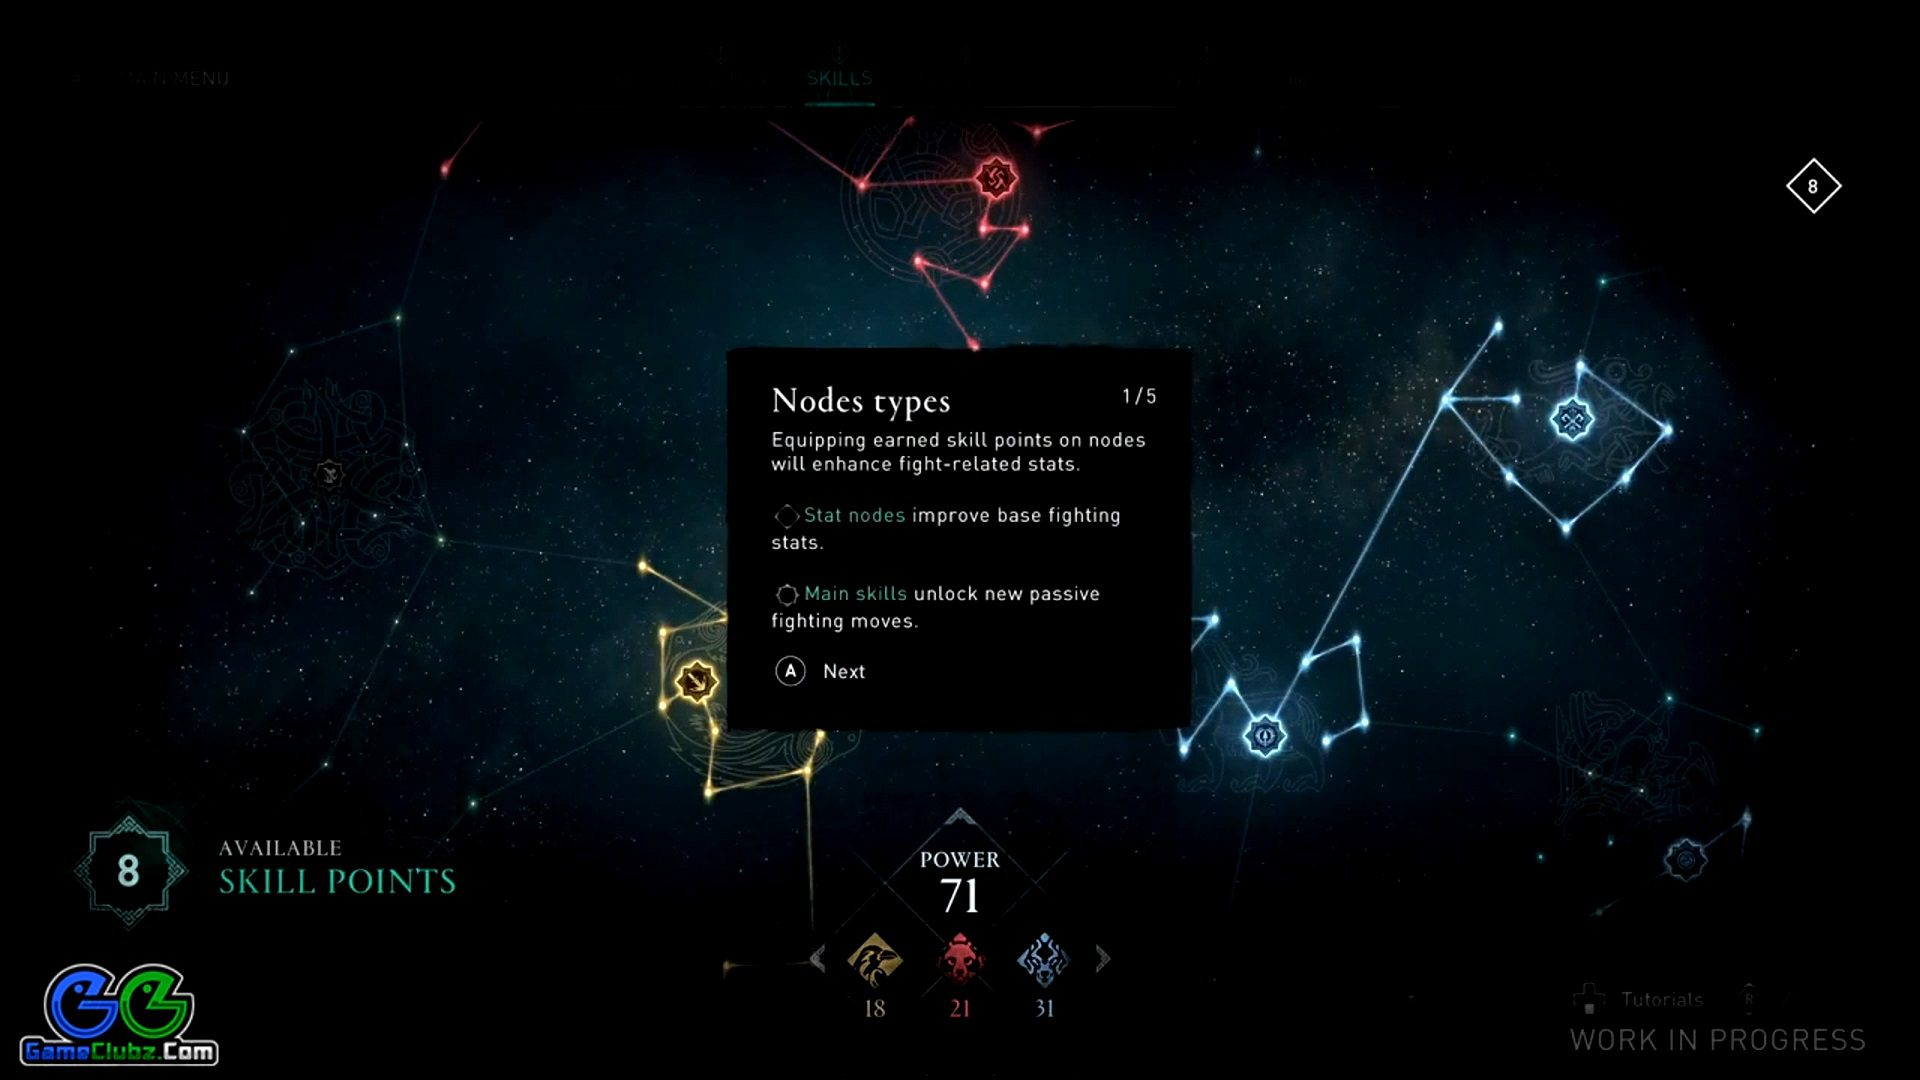 Assassin's Creed Valhalla Skill Nodes